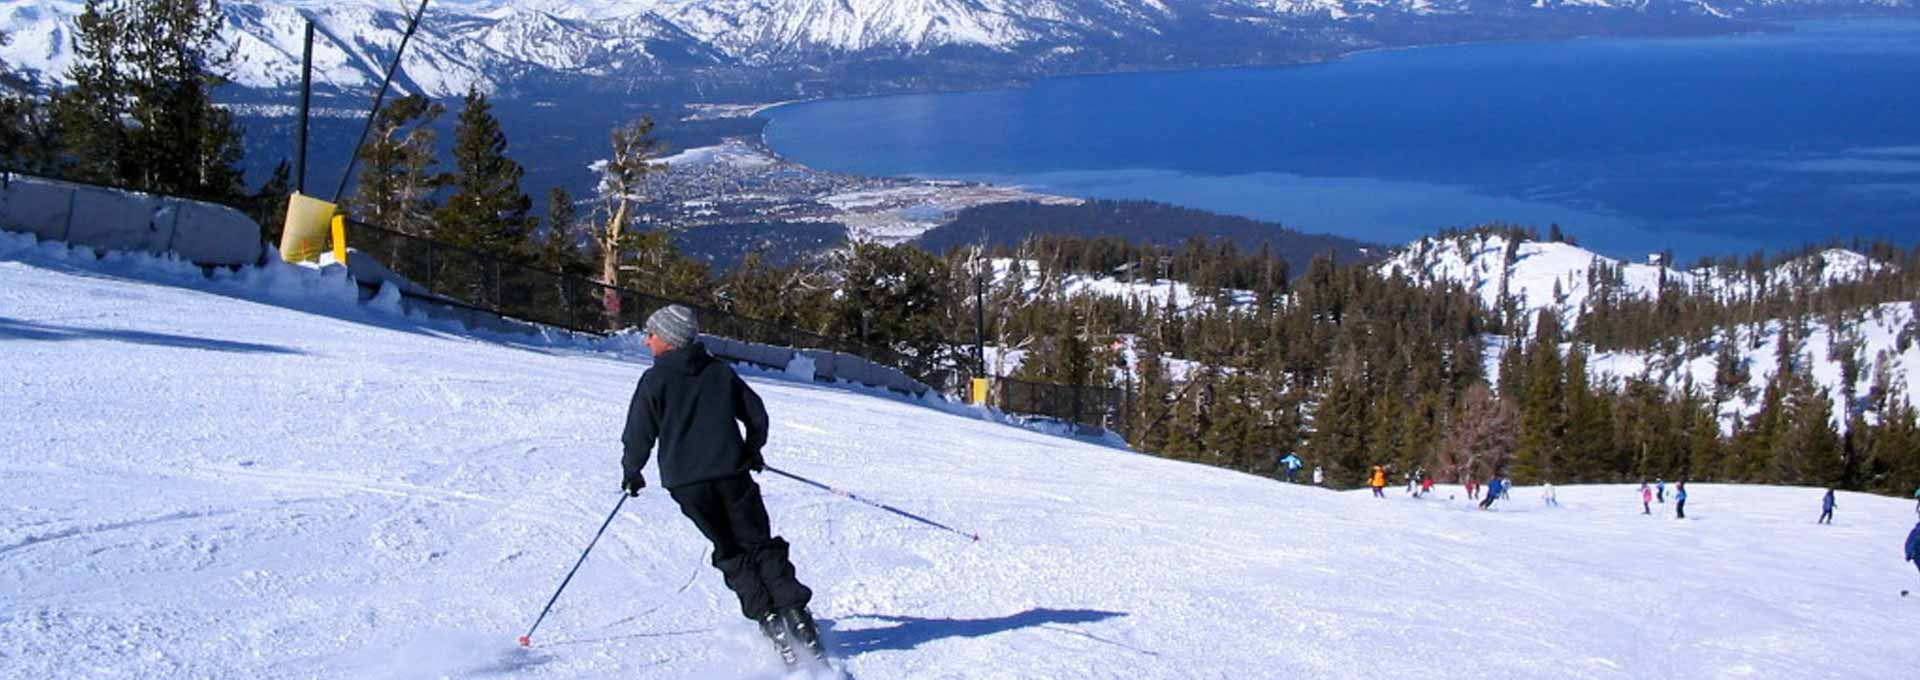 Planning Your Next Ski Trip To South Lake Tahoe or SLT